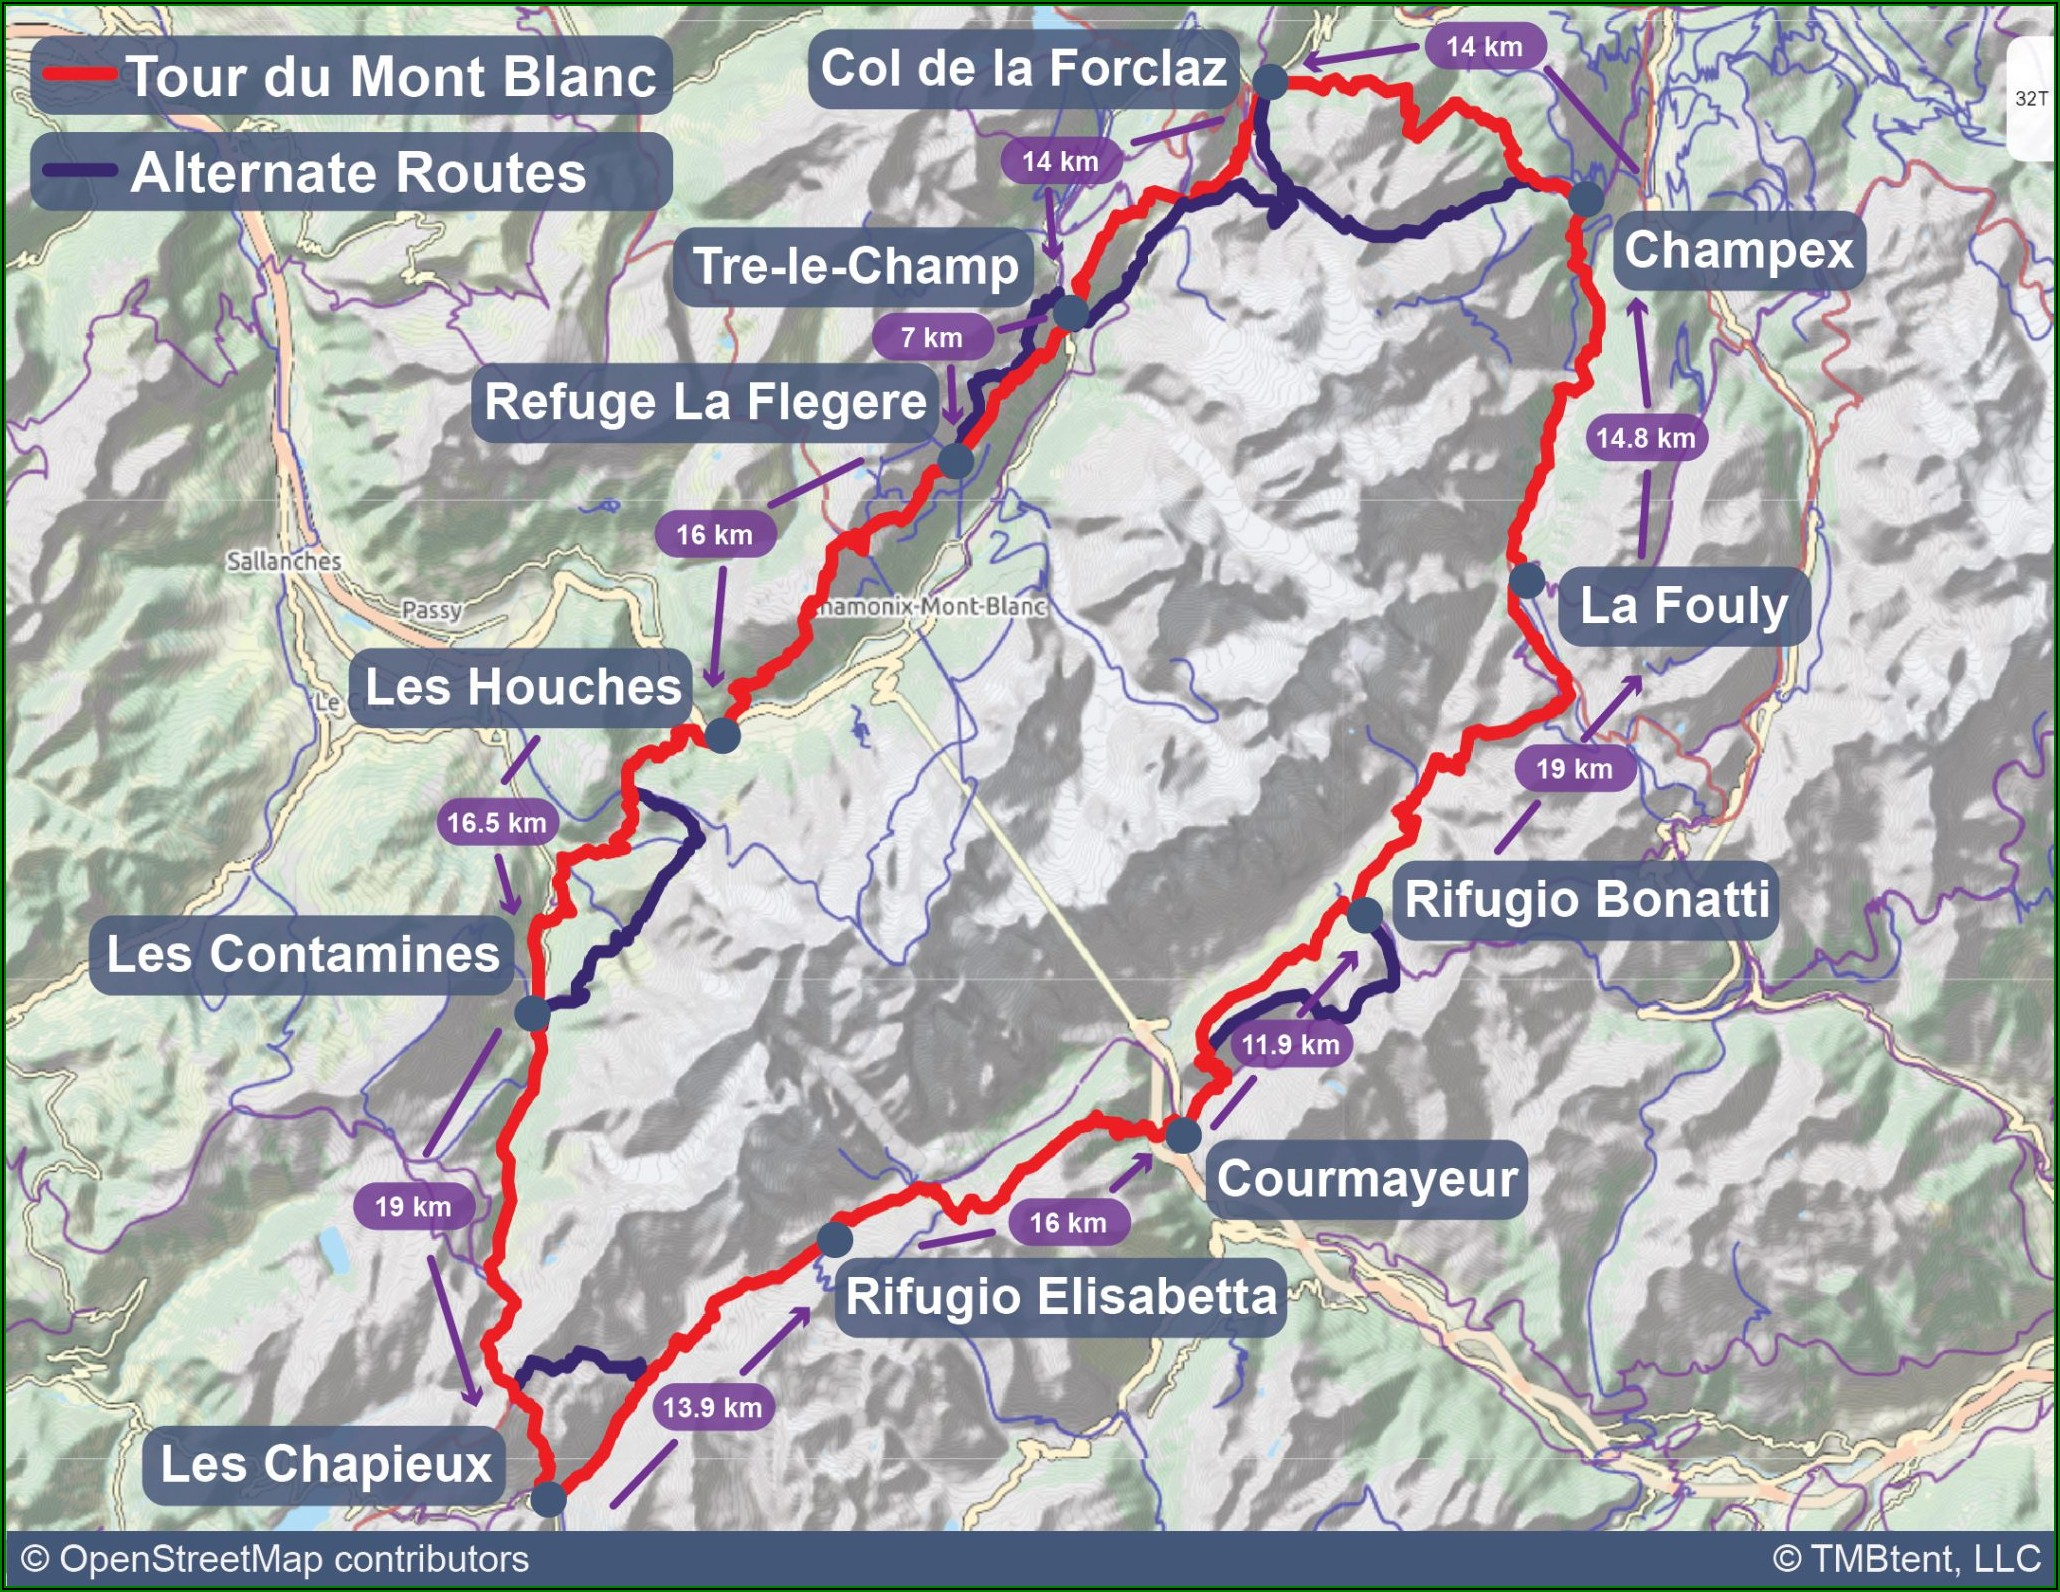 Tour Du Mont Blanc Map With Distances